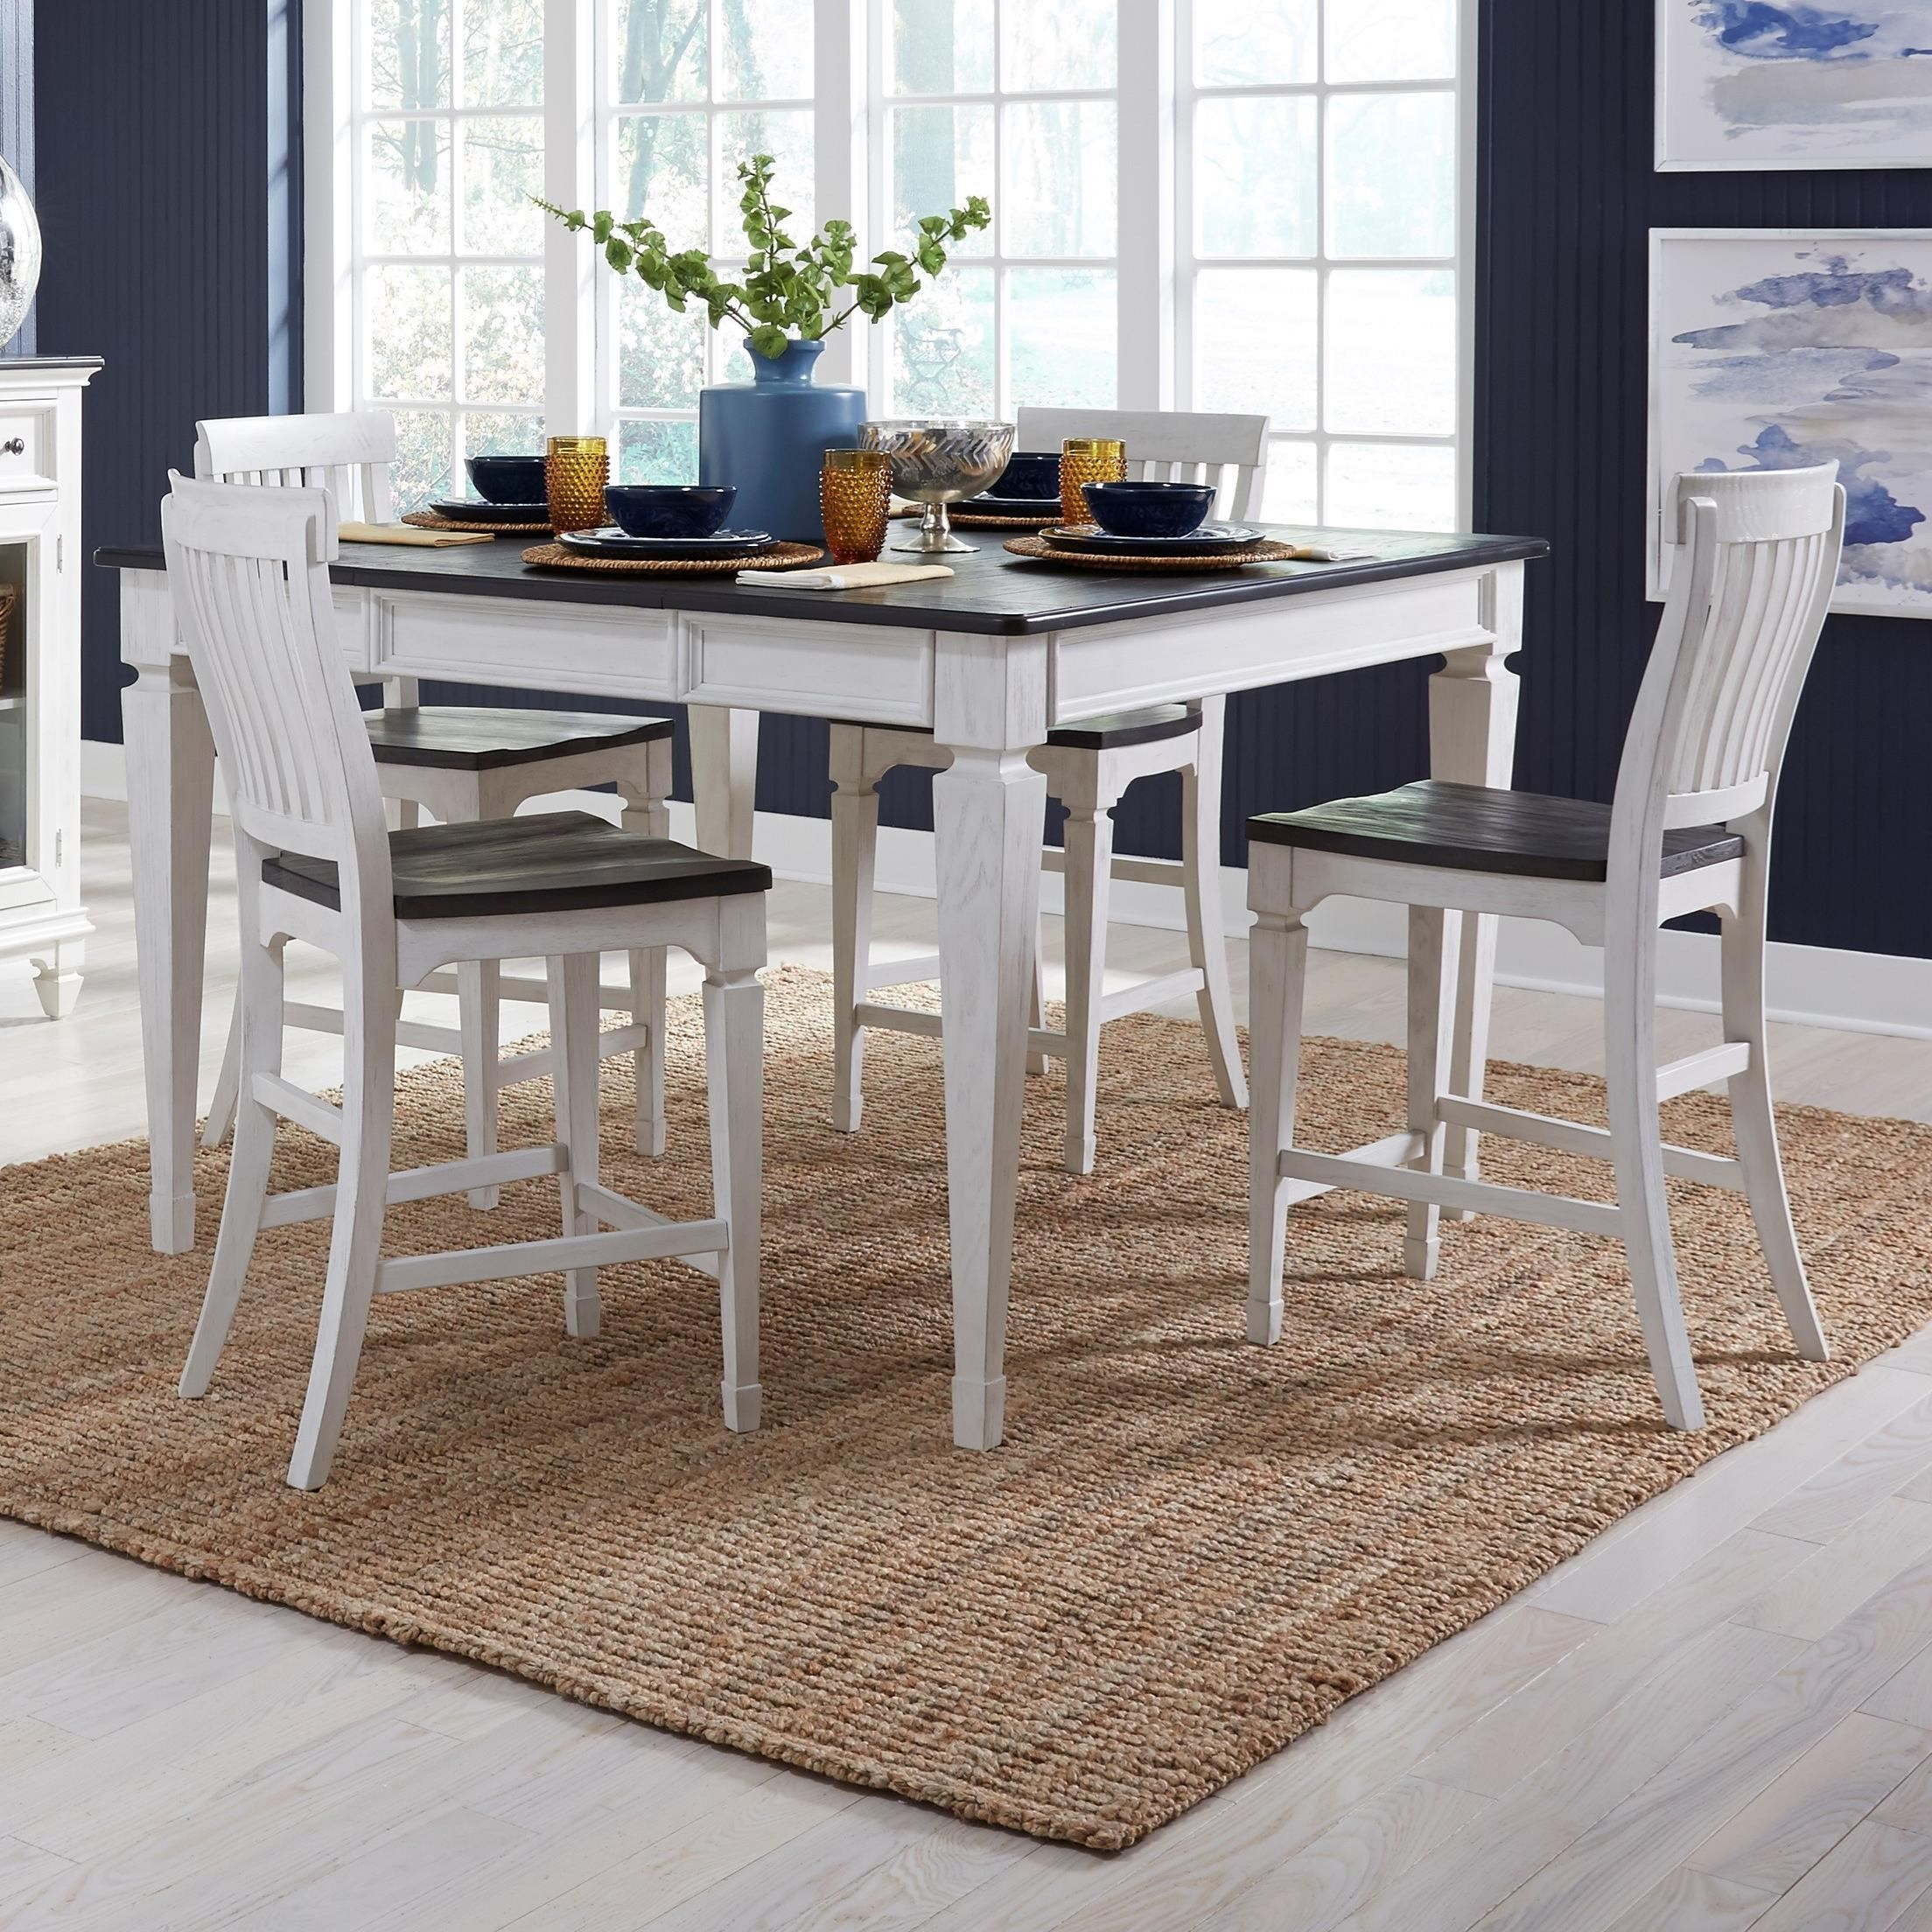 Transitional 5-Piece Gathering Table Set